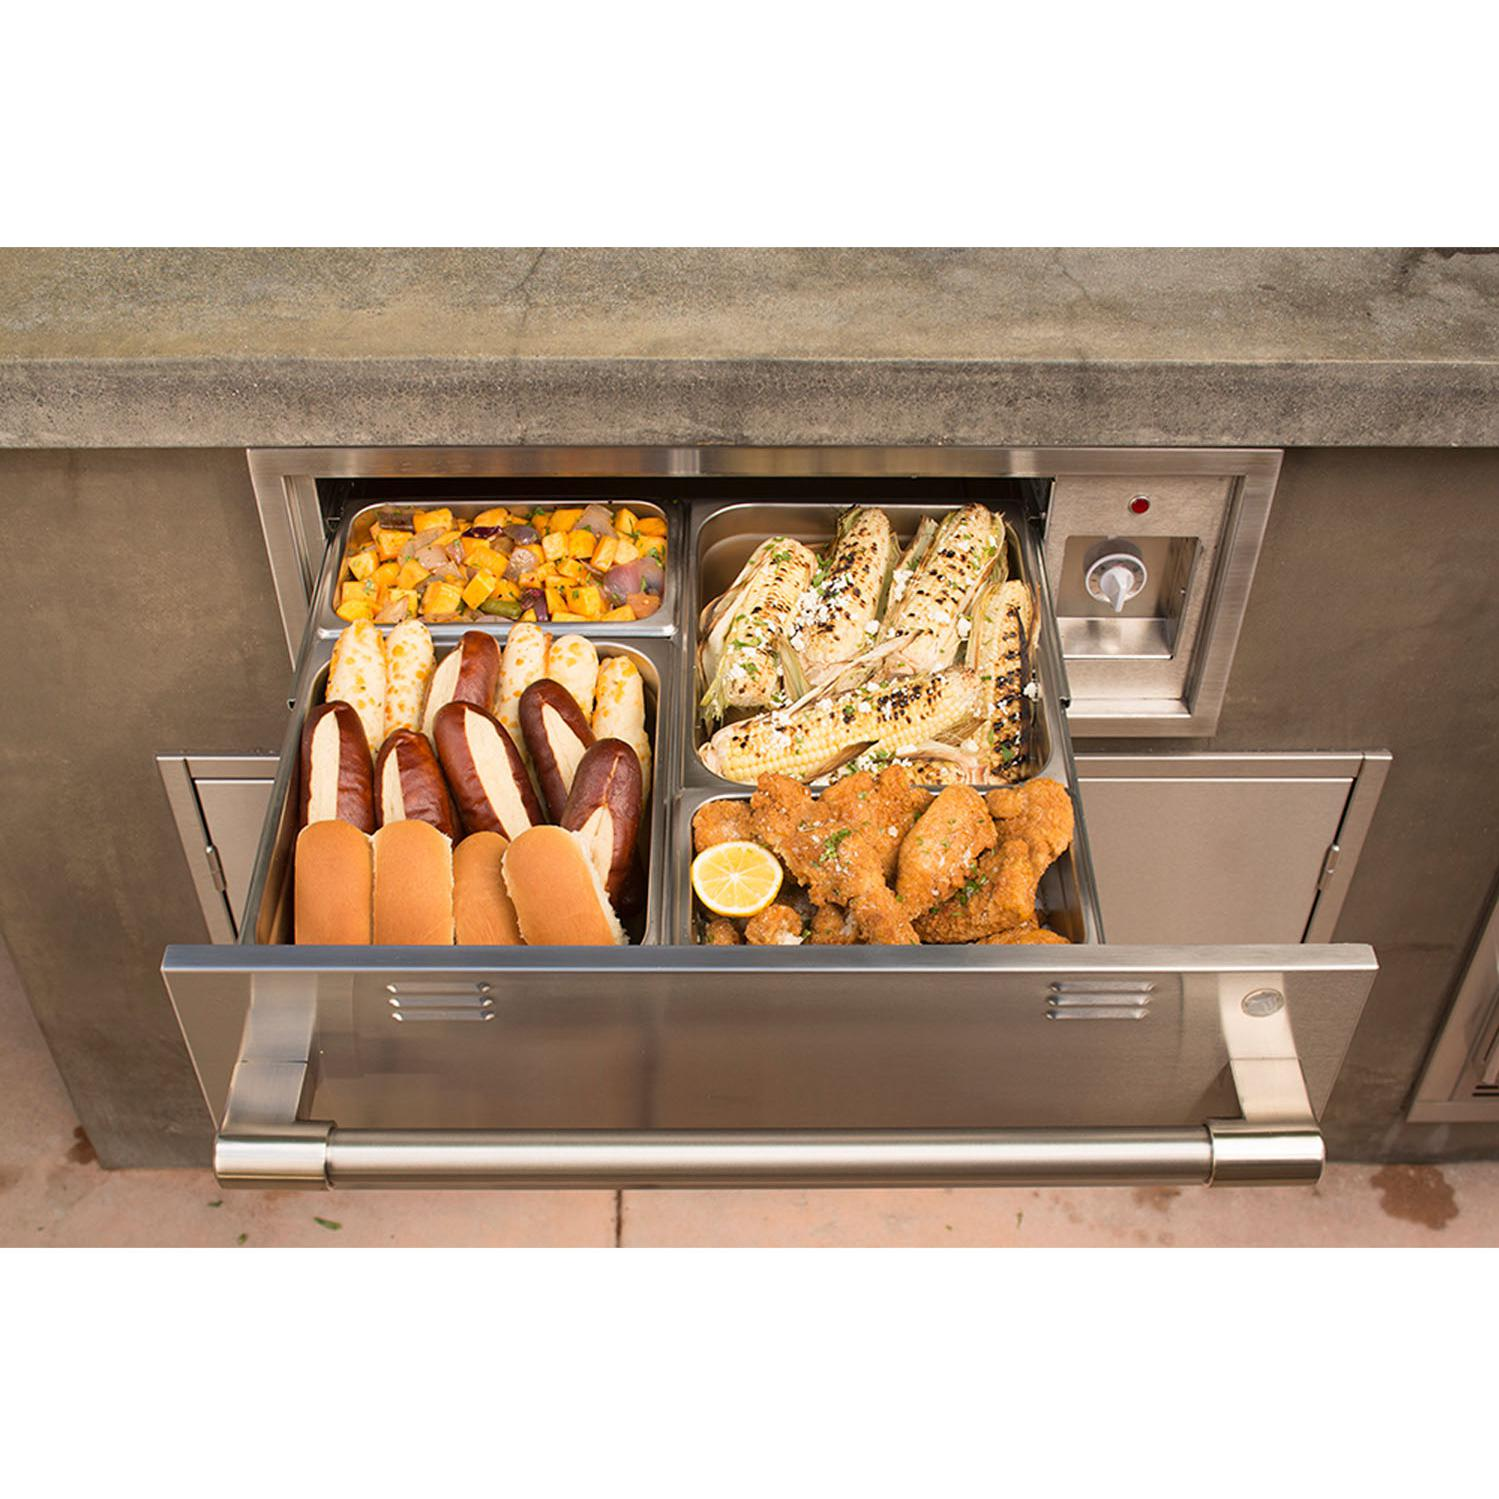 Alfresco 30-Inch Electric Warming Drawer